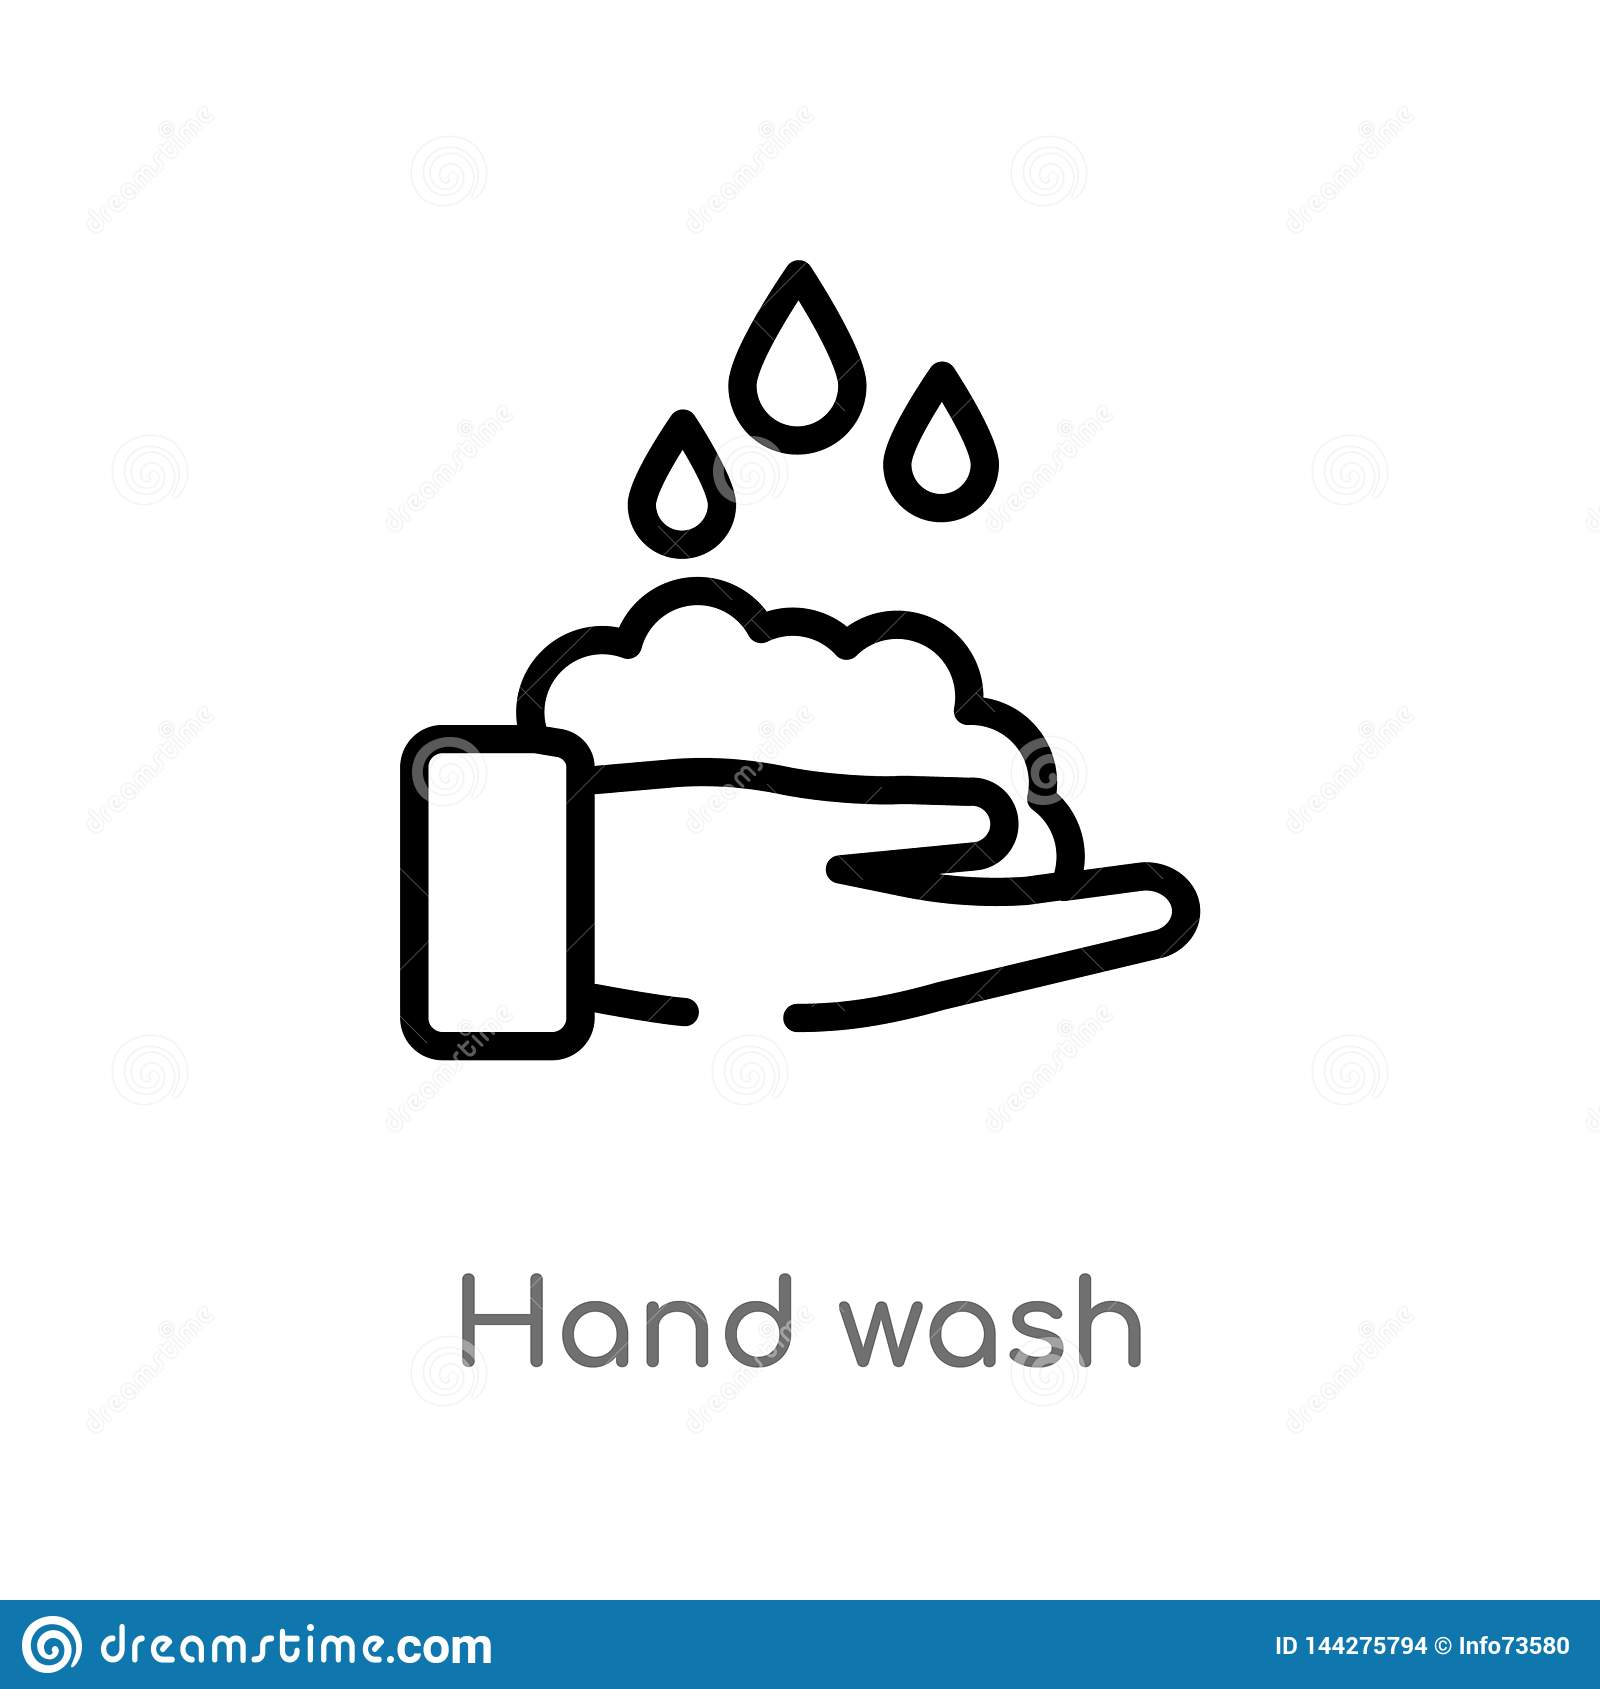 Outline Hand Wash Vector Icon Isolated Black Simple Line